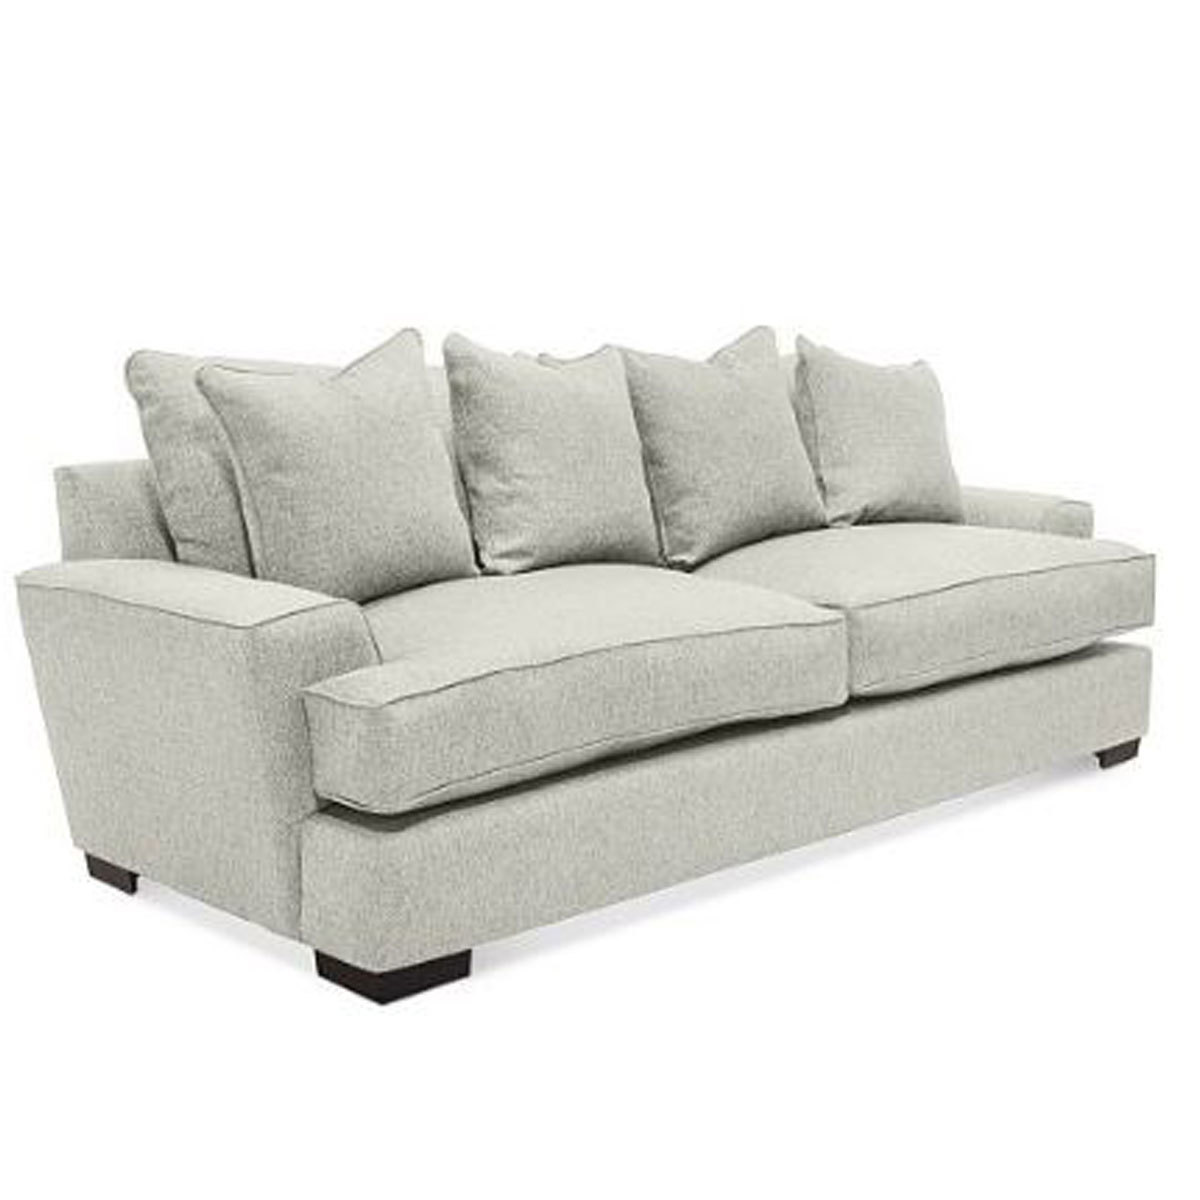 gray sofa with four pillows from Macy's photo